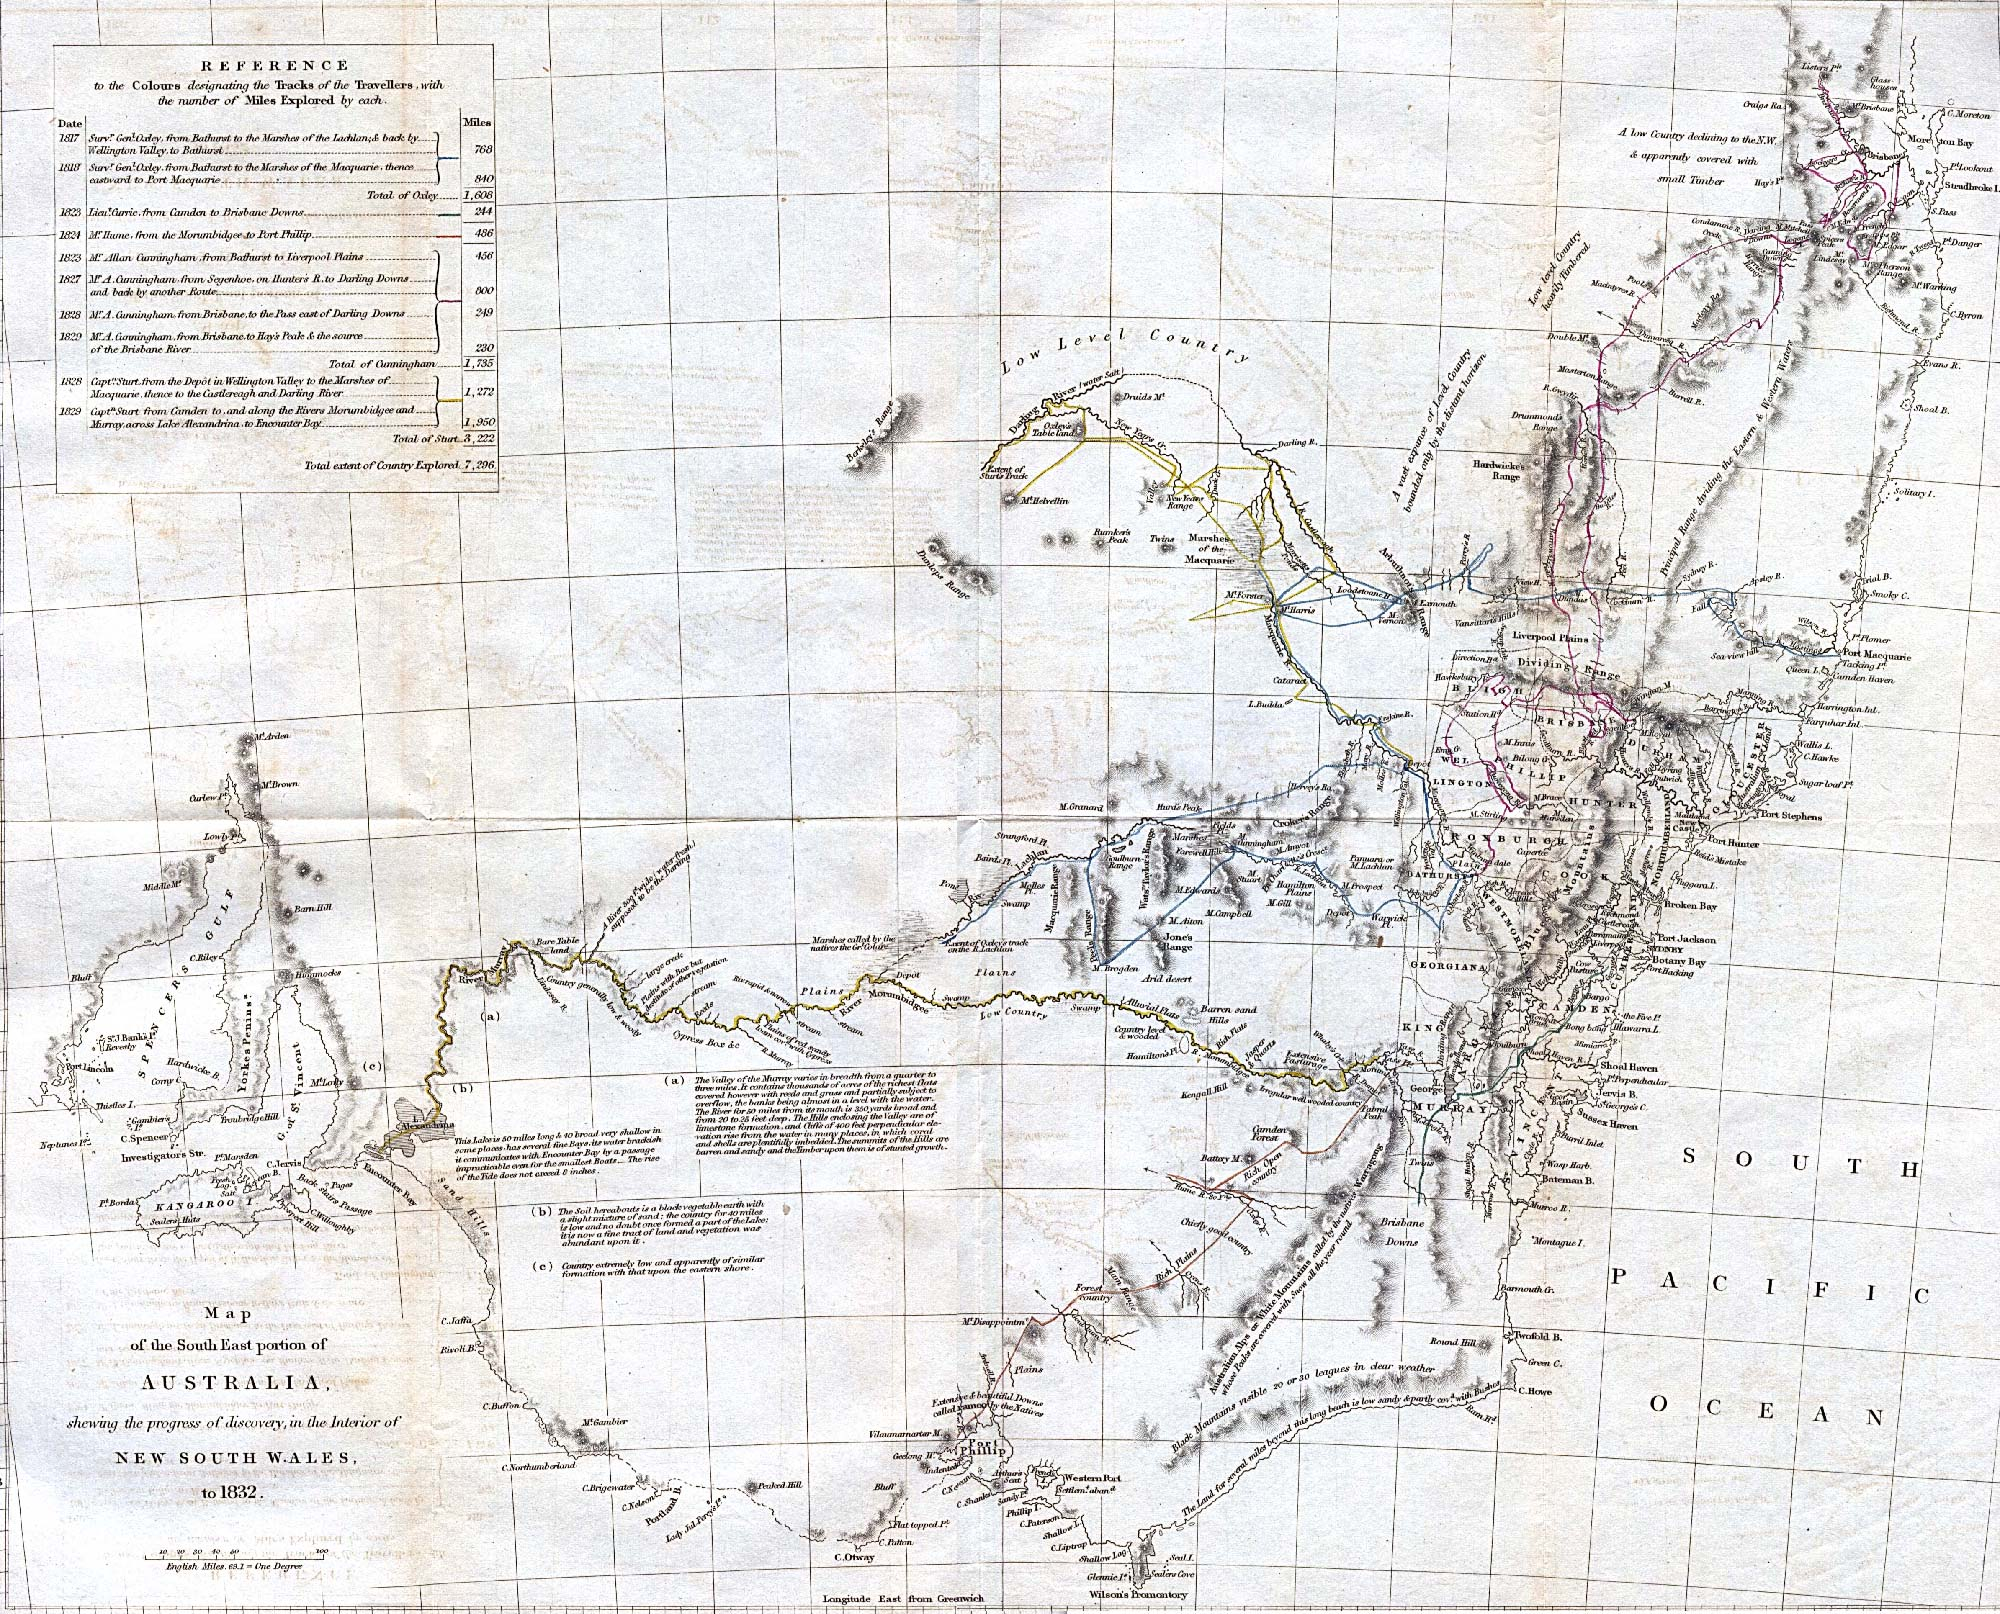 Australia and the Pacific Historical Maps - Perry-Castañeda ... on tahiti map pacific, world war ii pacific, world map pacific, garbage island pacific, silestone pacific, war in pacific,